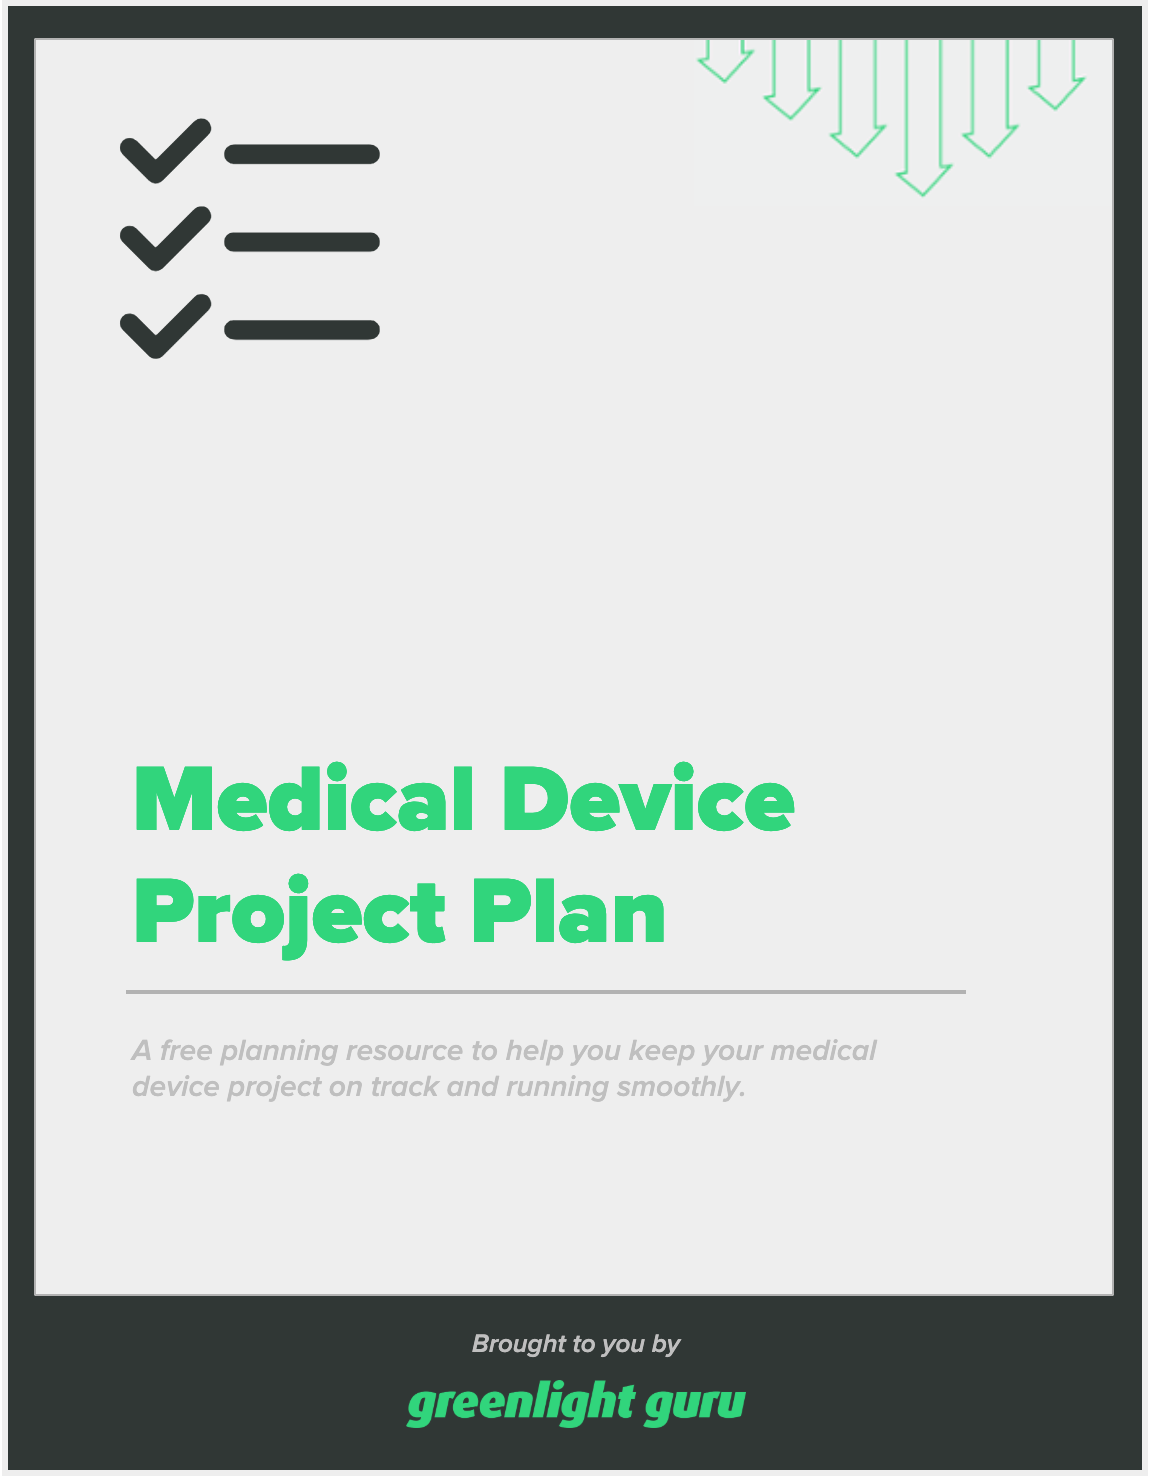 Medical Device Project Plan - slide-in cover